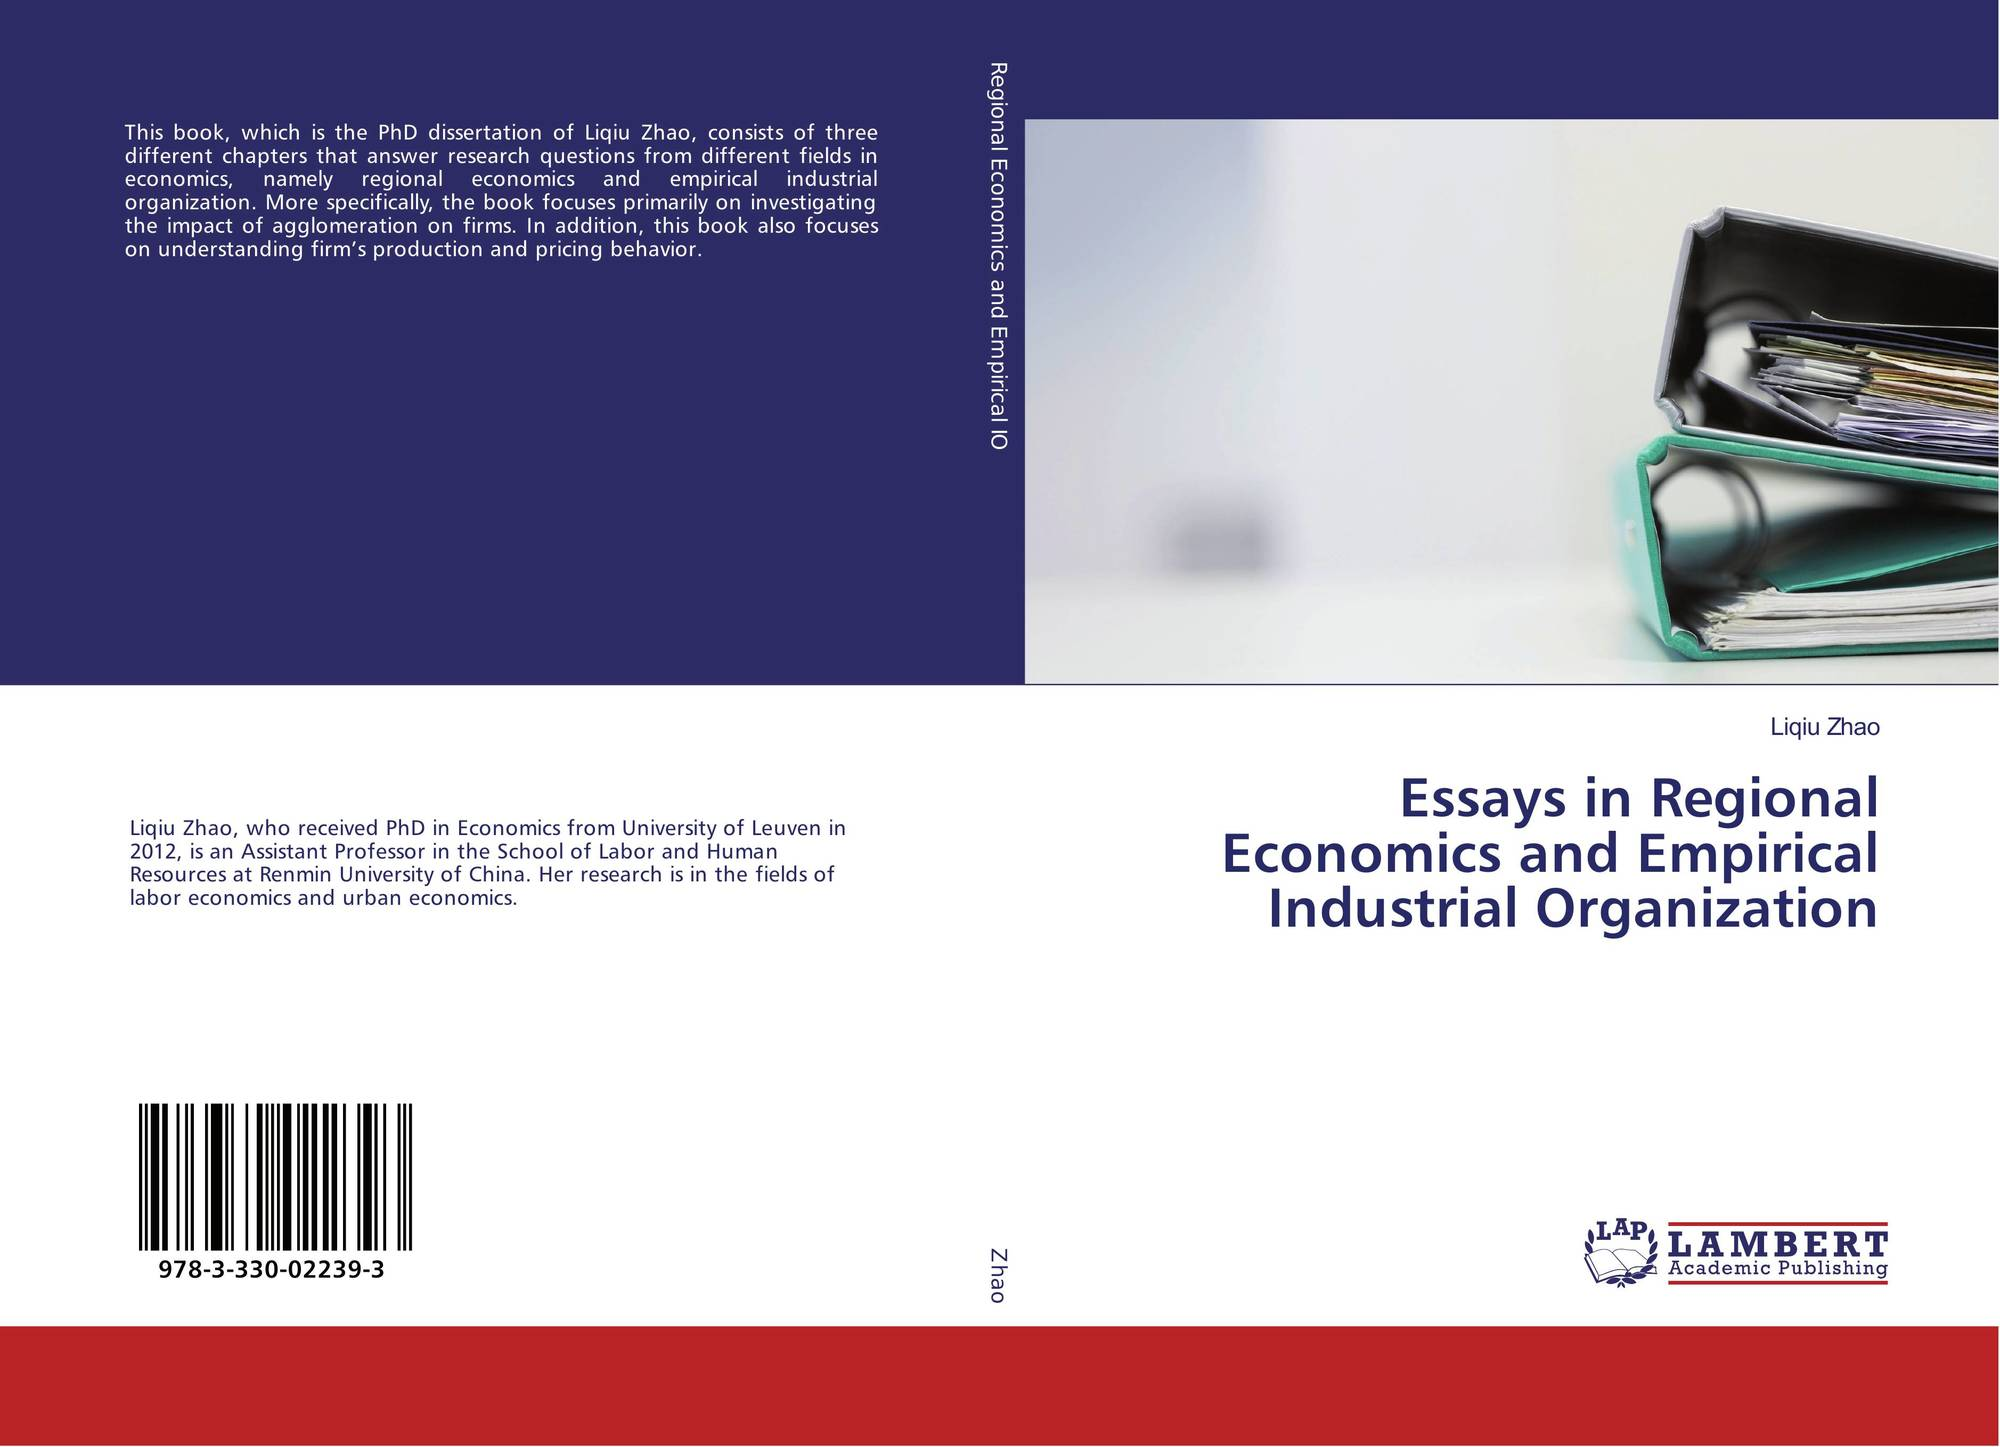 Empirical essays in health and education economics